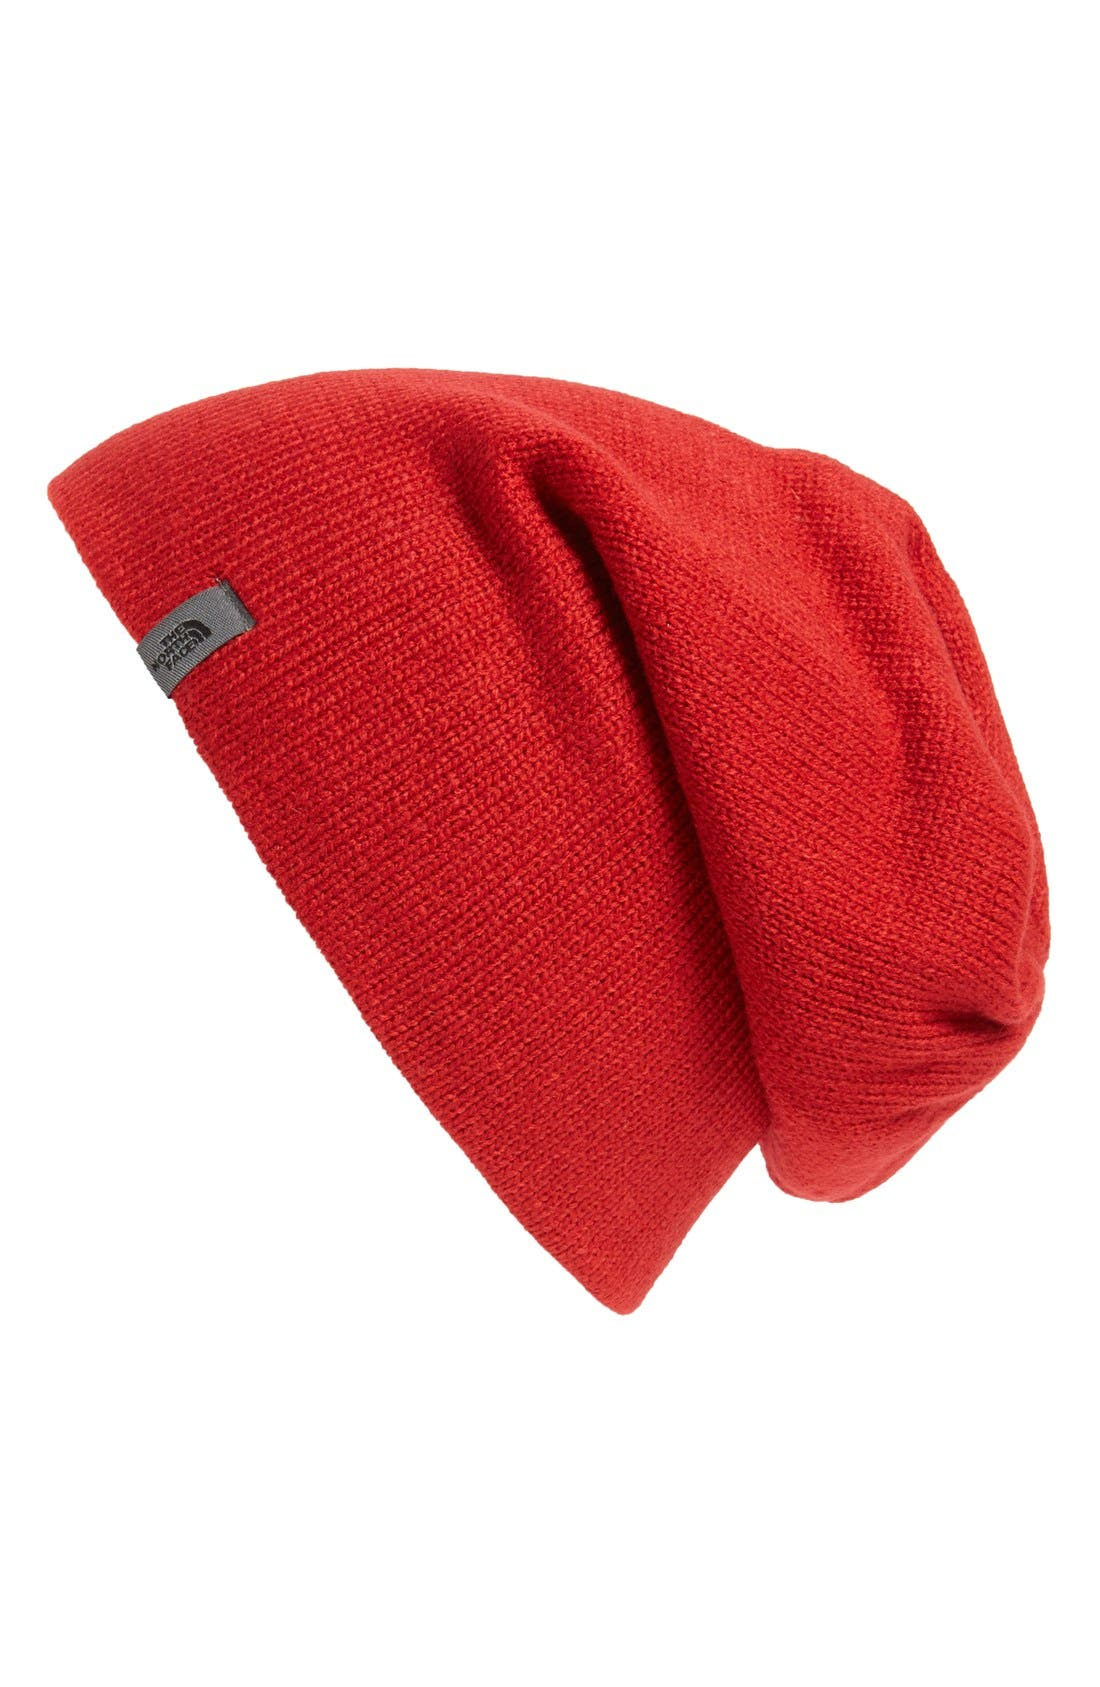 Alternate Image 1 Selected - The North Face 'Any Grade' Knit Cap